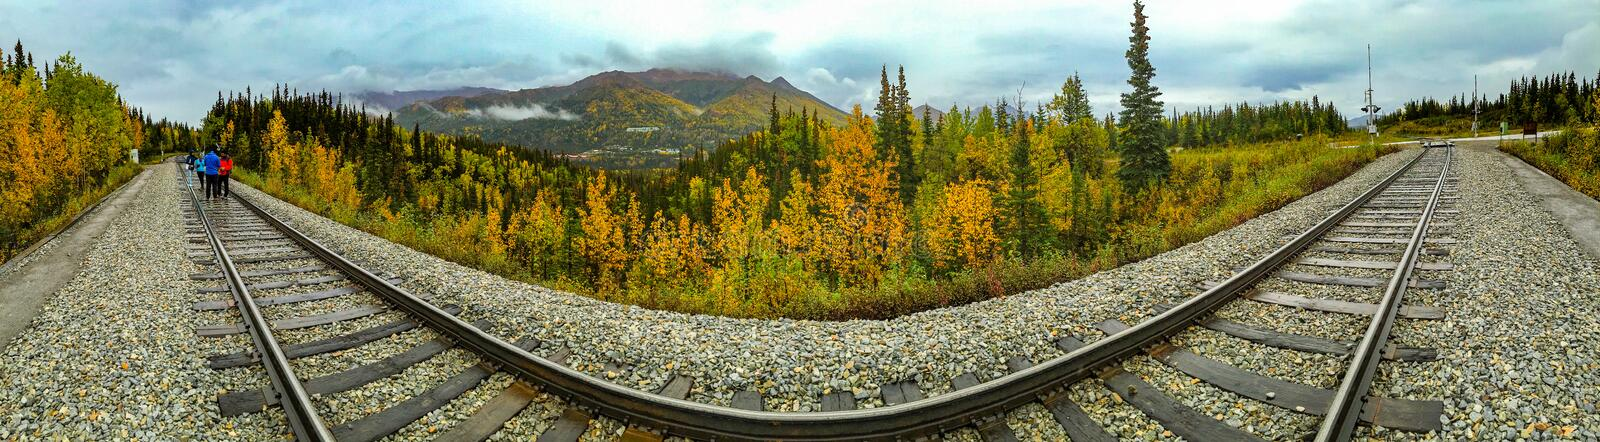 Denali Train Tracks. Denali, Alaska, USA - Sept. 5, 2016: Distorted perspective panorama of railroad tracks skirting through Denali National Park. Tracks are stock image